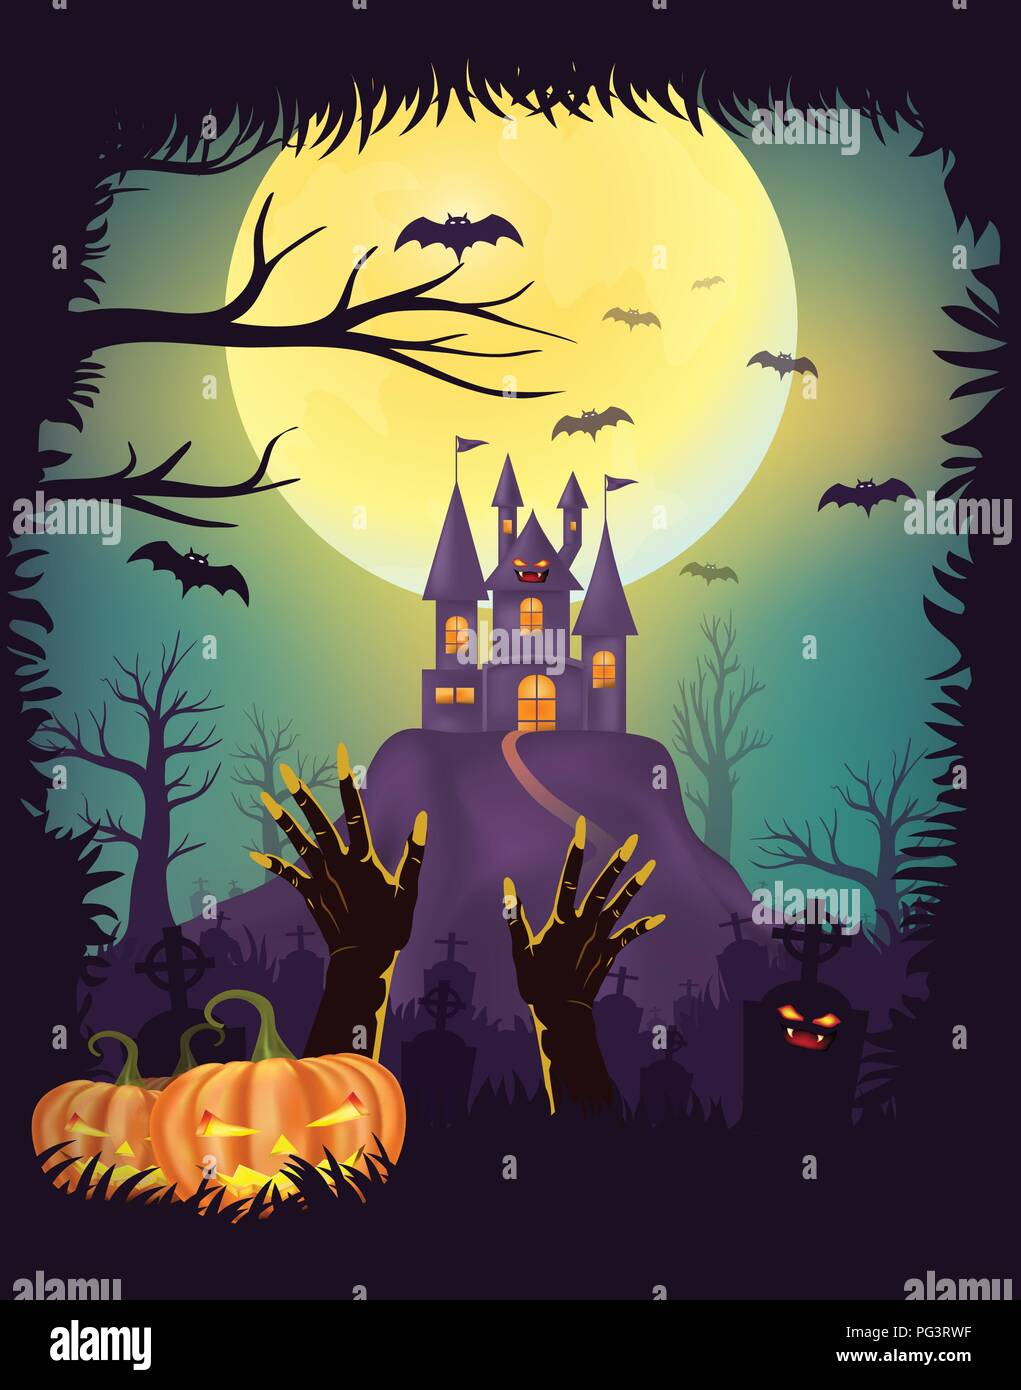 Happy Halloween night party poster design, Zombie hand rising out of the grave in cemetery, graveyards with pumpkins, Creepy castle, Full moon backgro - Stock Vector